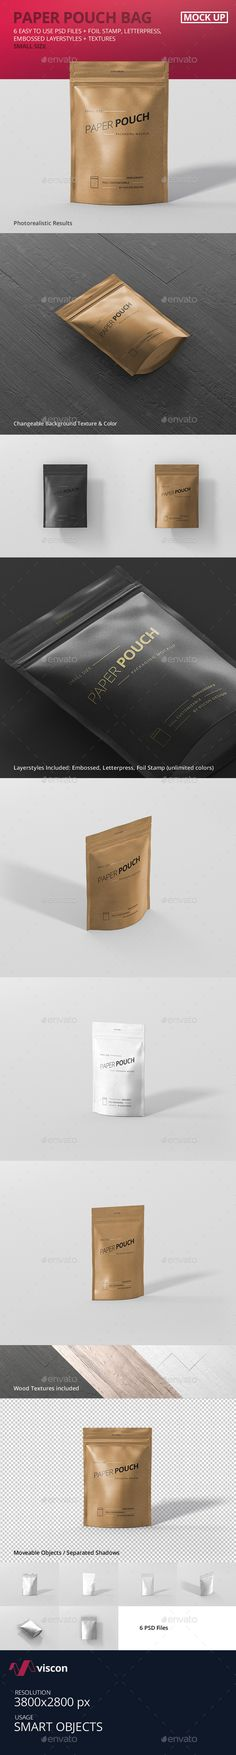 Paper Pouch Bag Mockup Small Size — Photoshop PSD #food #packaging • Available here → https://graphicriver.net/item/paper-pouch-bag-mockup-small-size/19389708?ref=pxcr